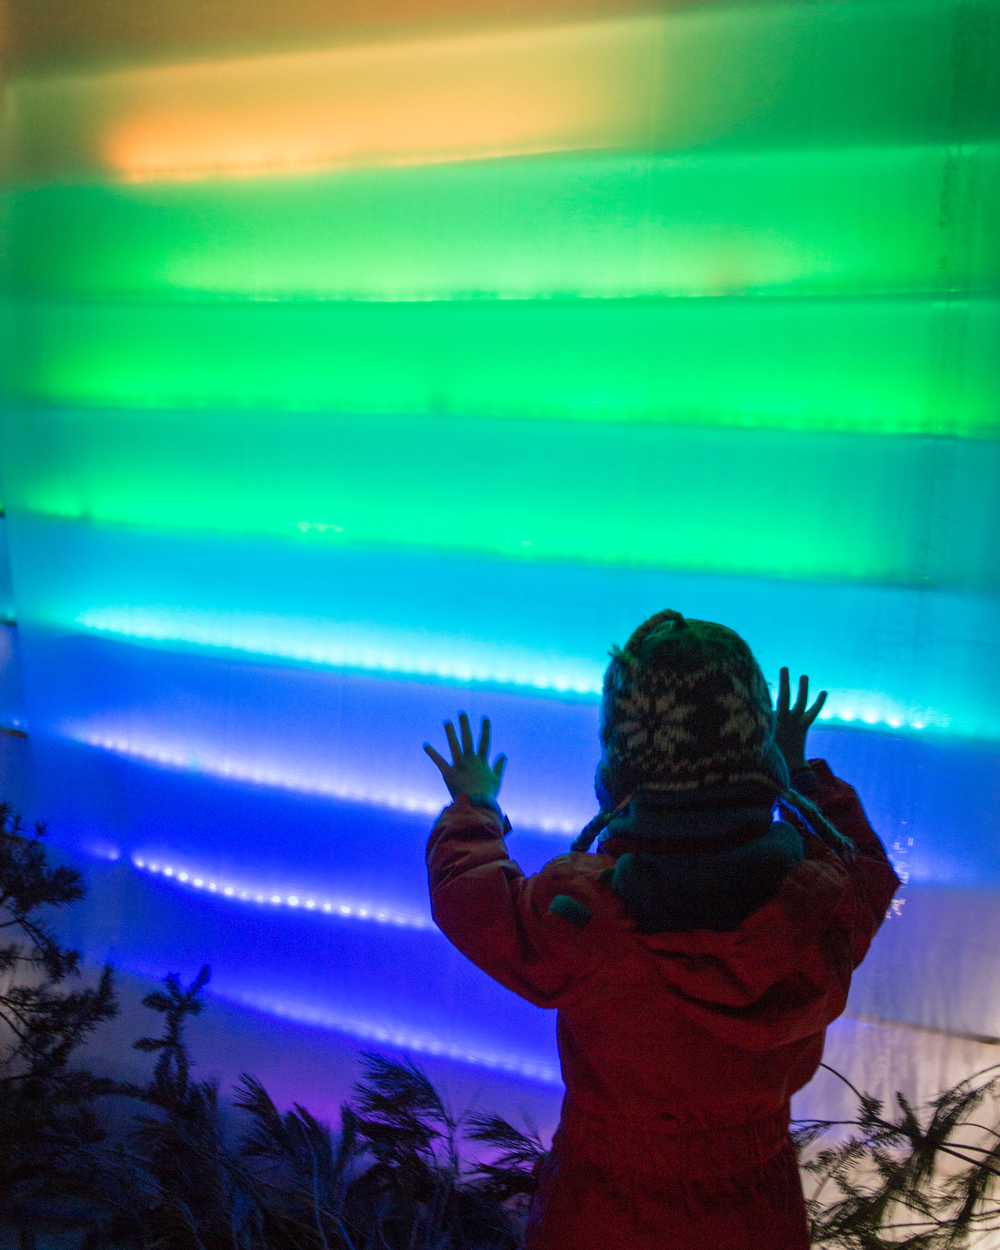 Interact with Northern Lights at the Aurora Shanty! This solar-powered shanty adds much color to the white world of White Bear Lake